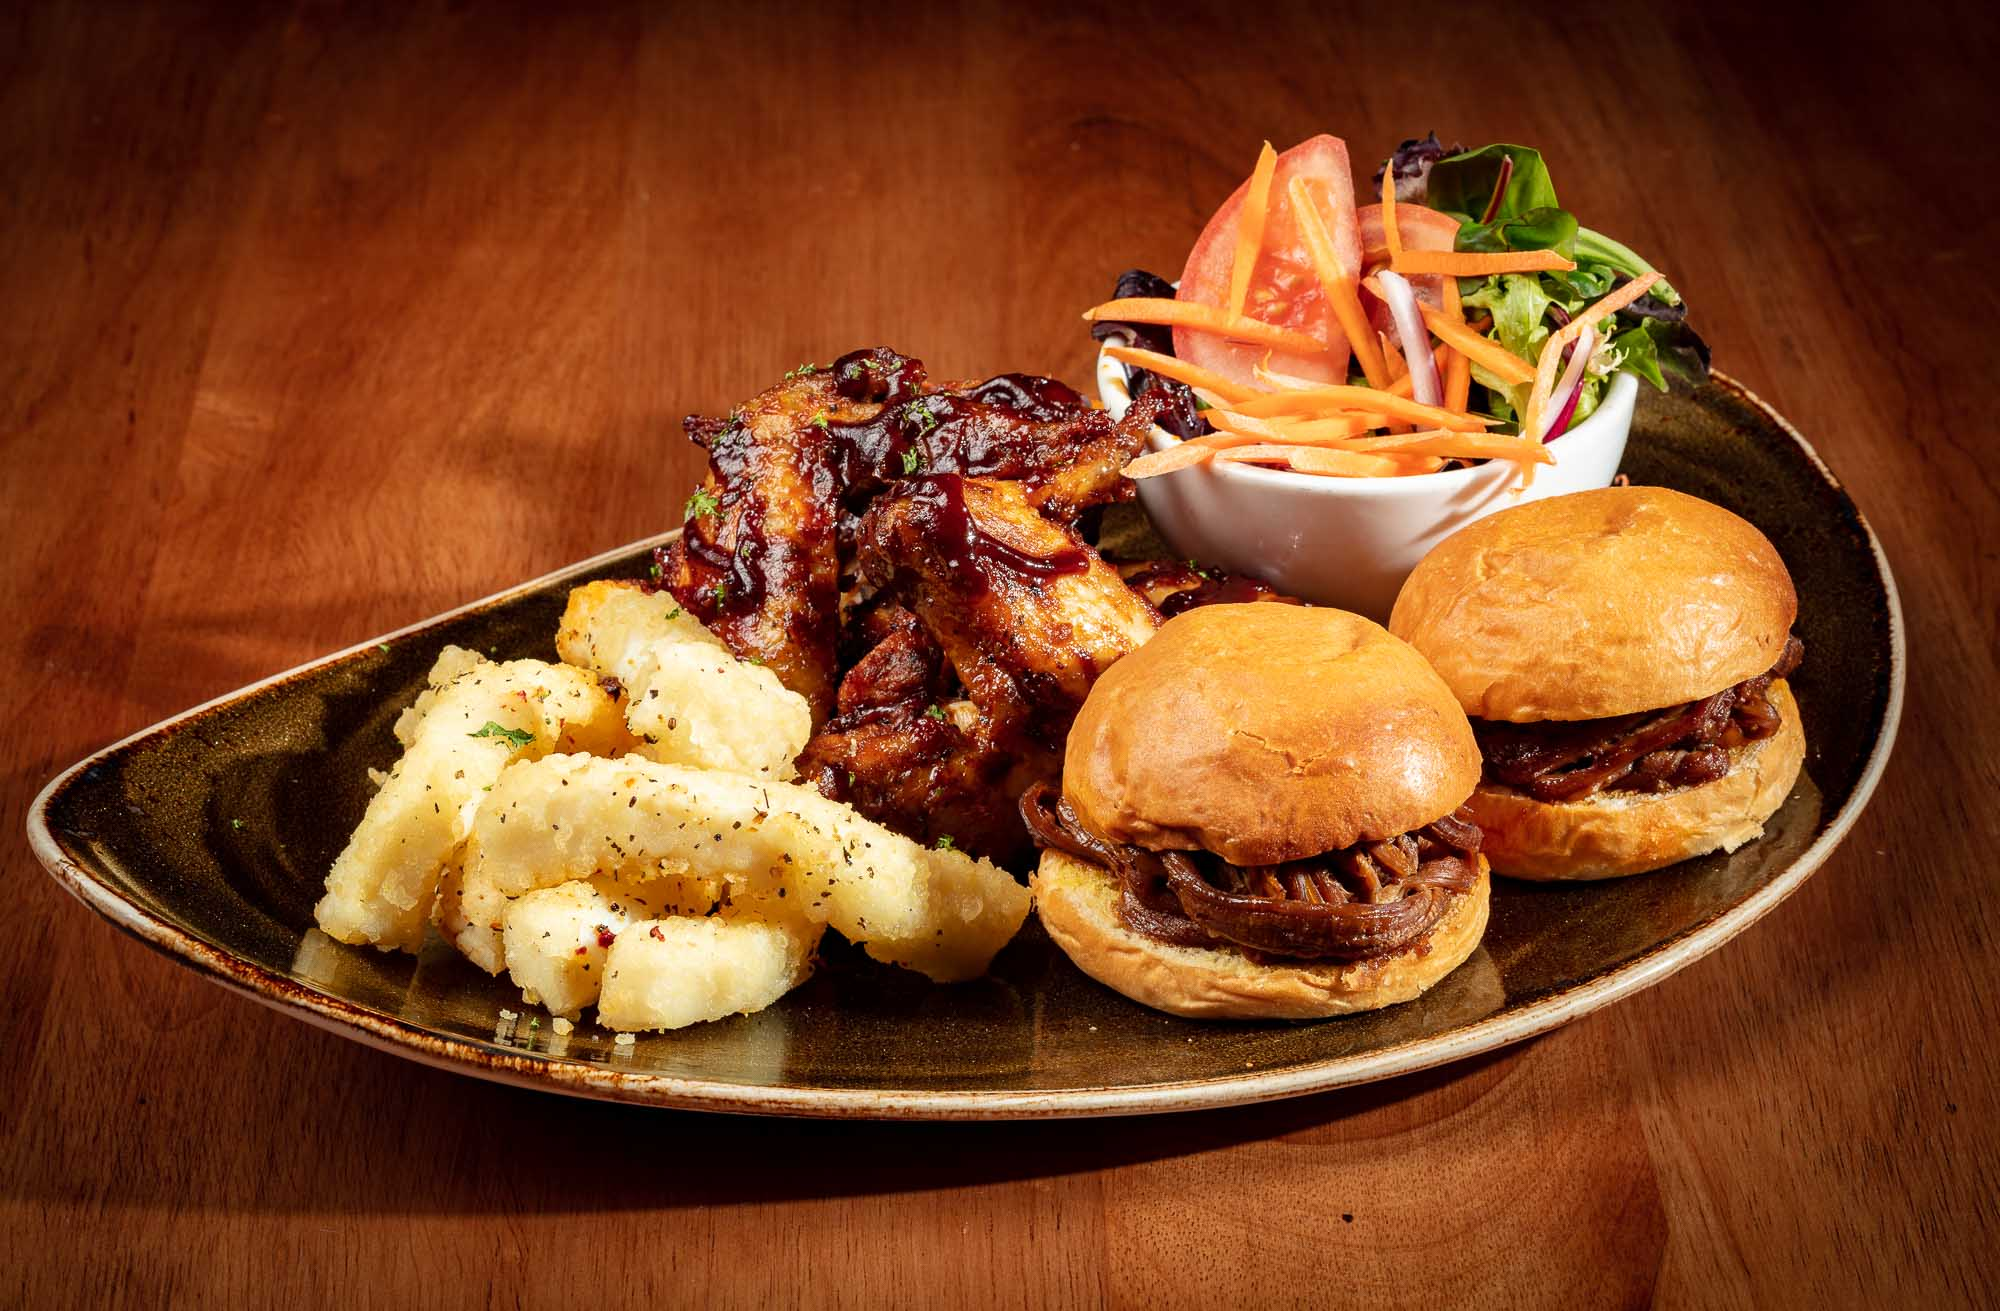 Food photography sample - Food plater 7